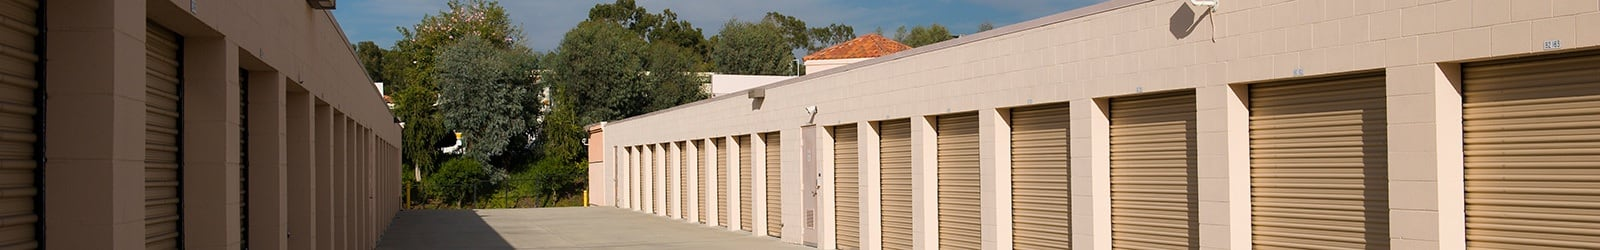 North County Self Storage offer Climate Controlled Storage Options